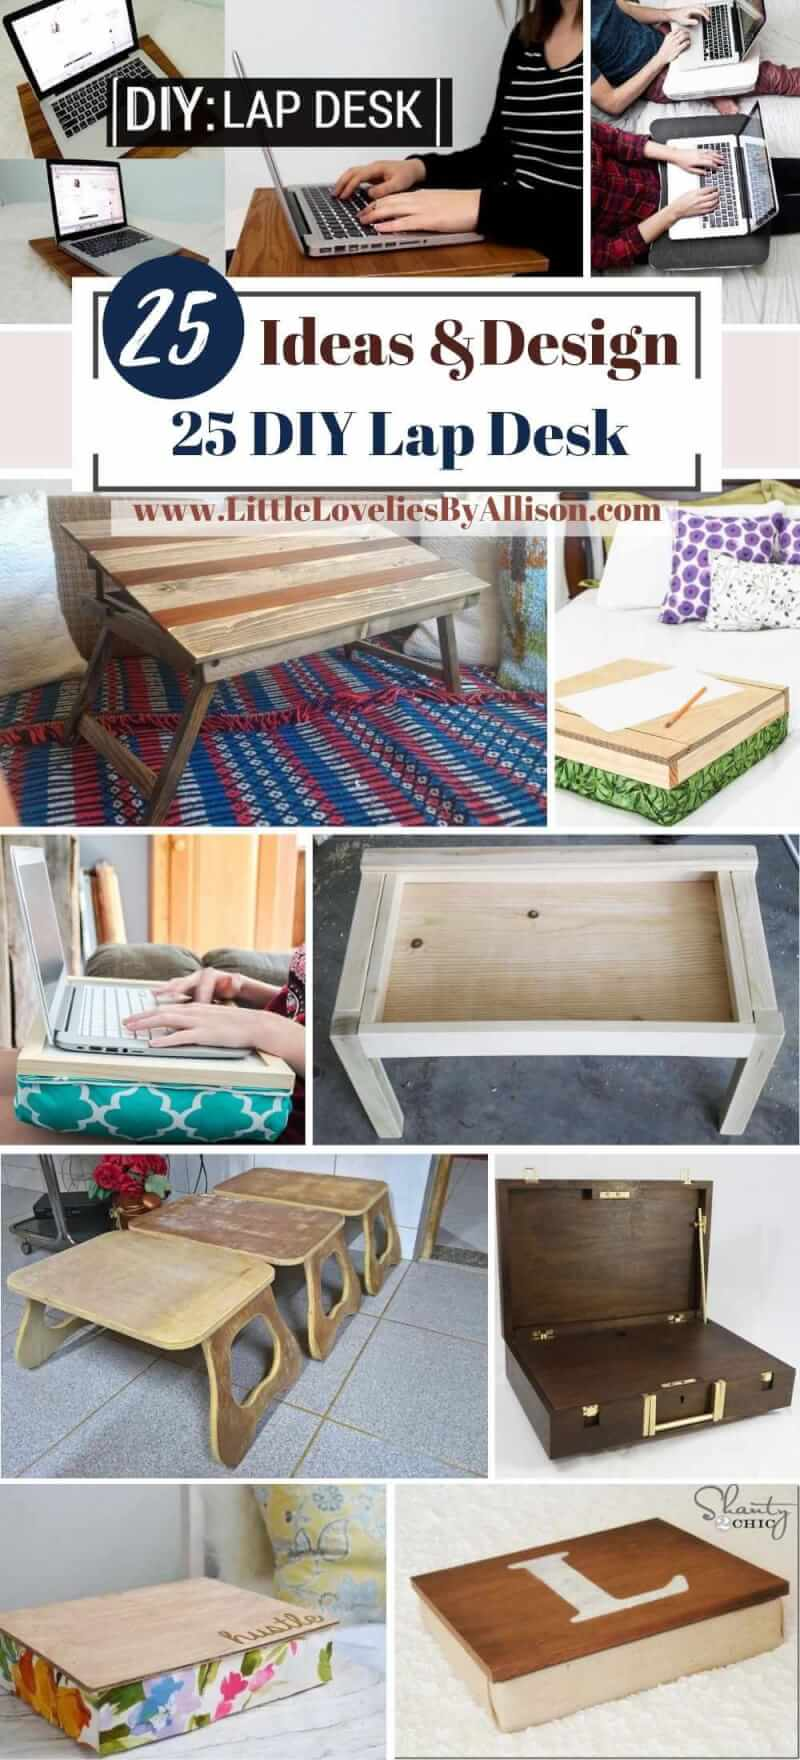 25 DIY Lap Desk Ideas_ Do It Yourself Easily